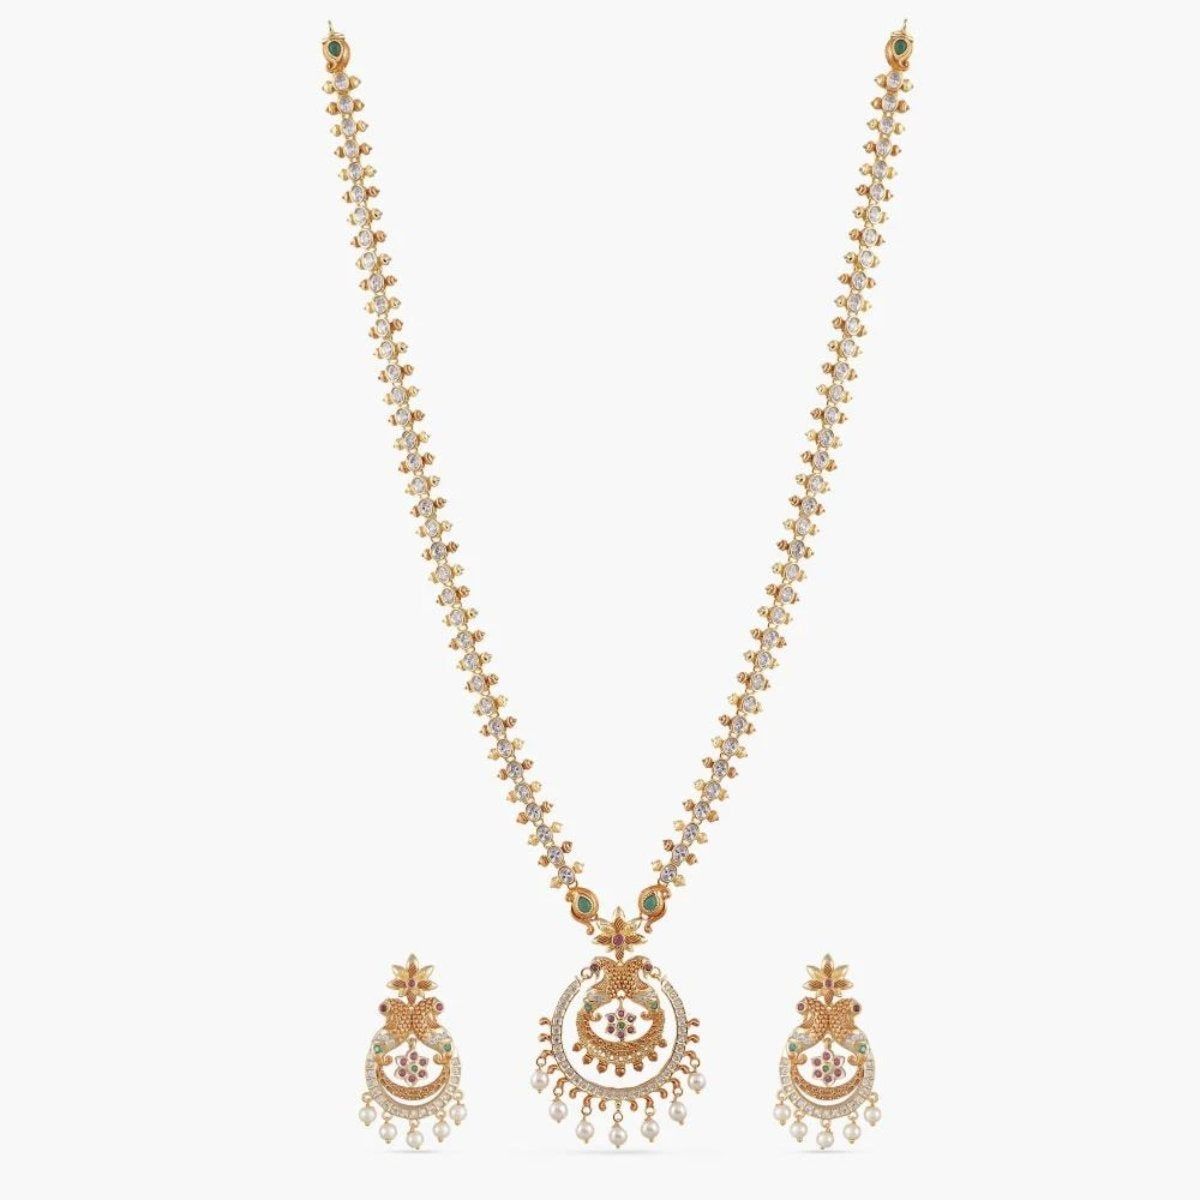 Hrida Nakshatra CZ Long Necklace Set